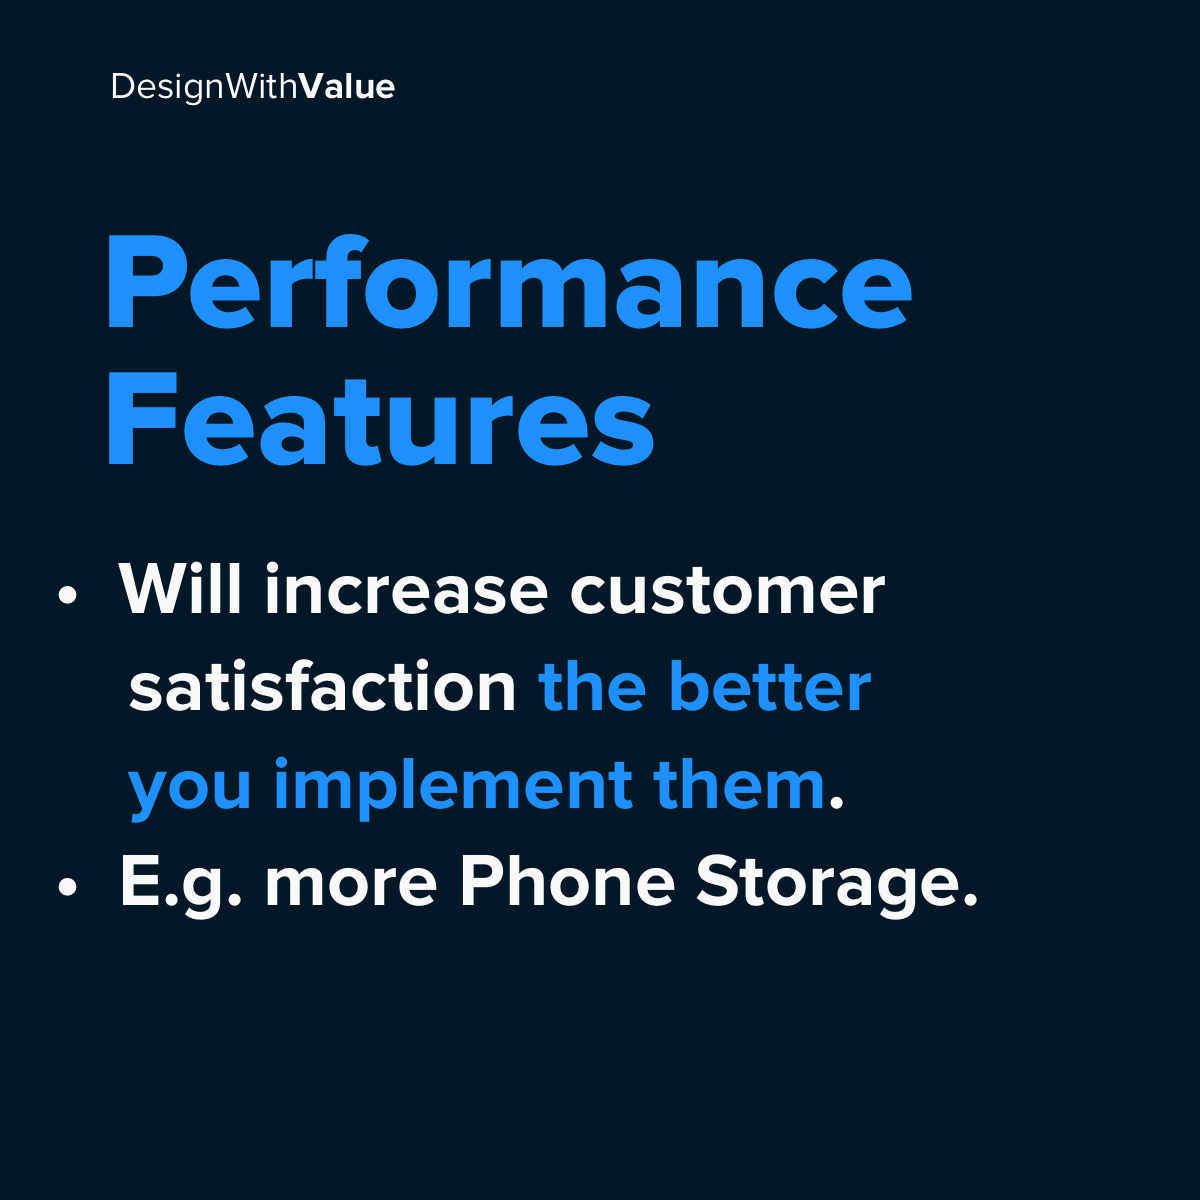 Performance features: Will increase customer satisfaction the better you implement them. Example: More phone storage.